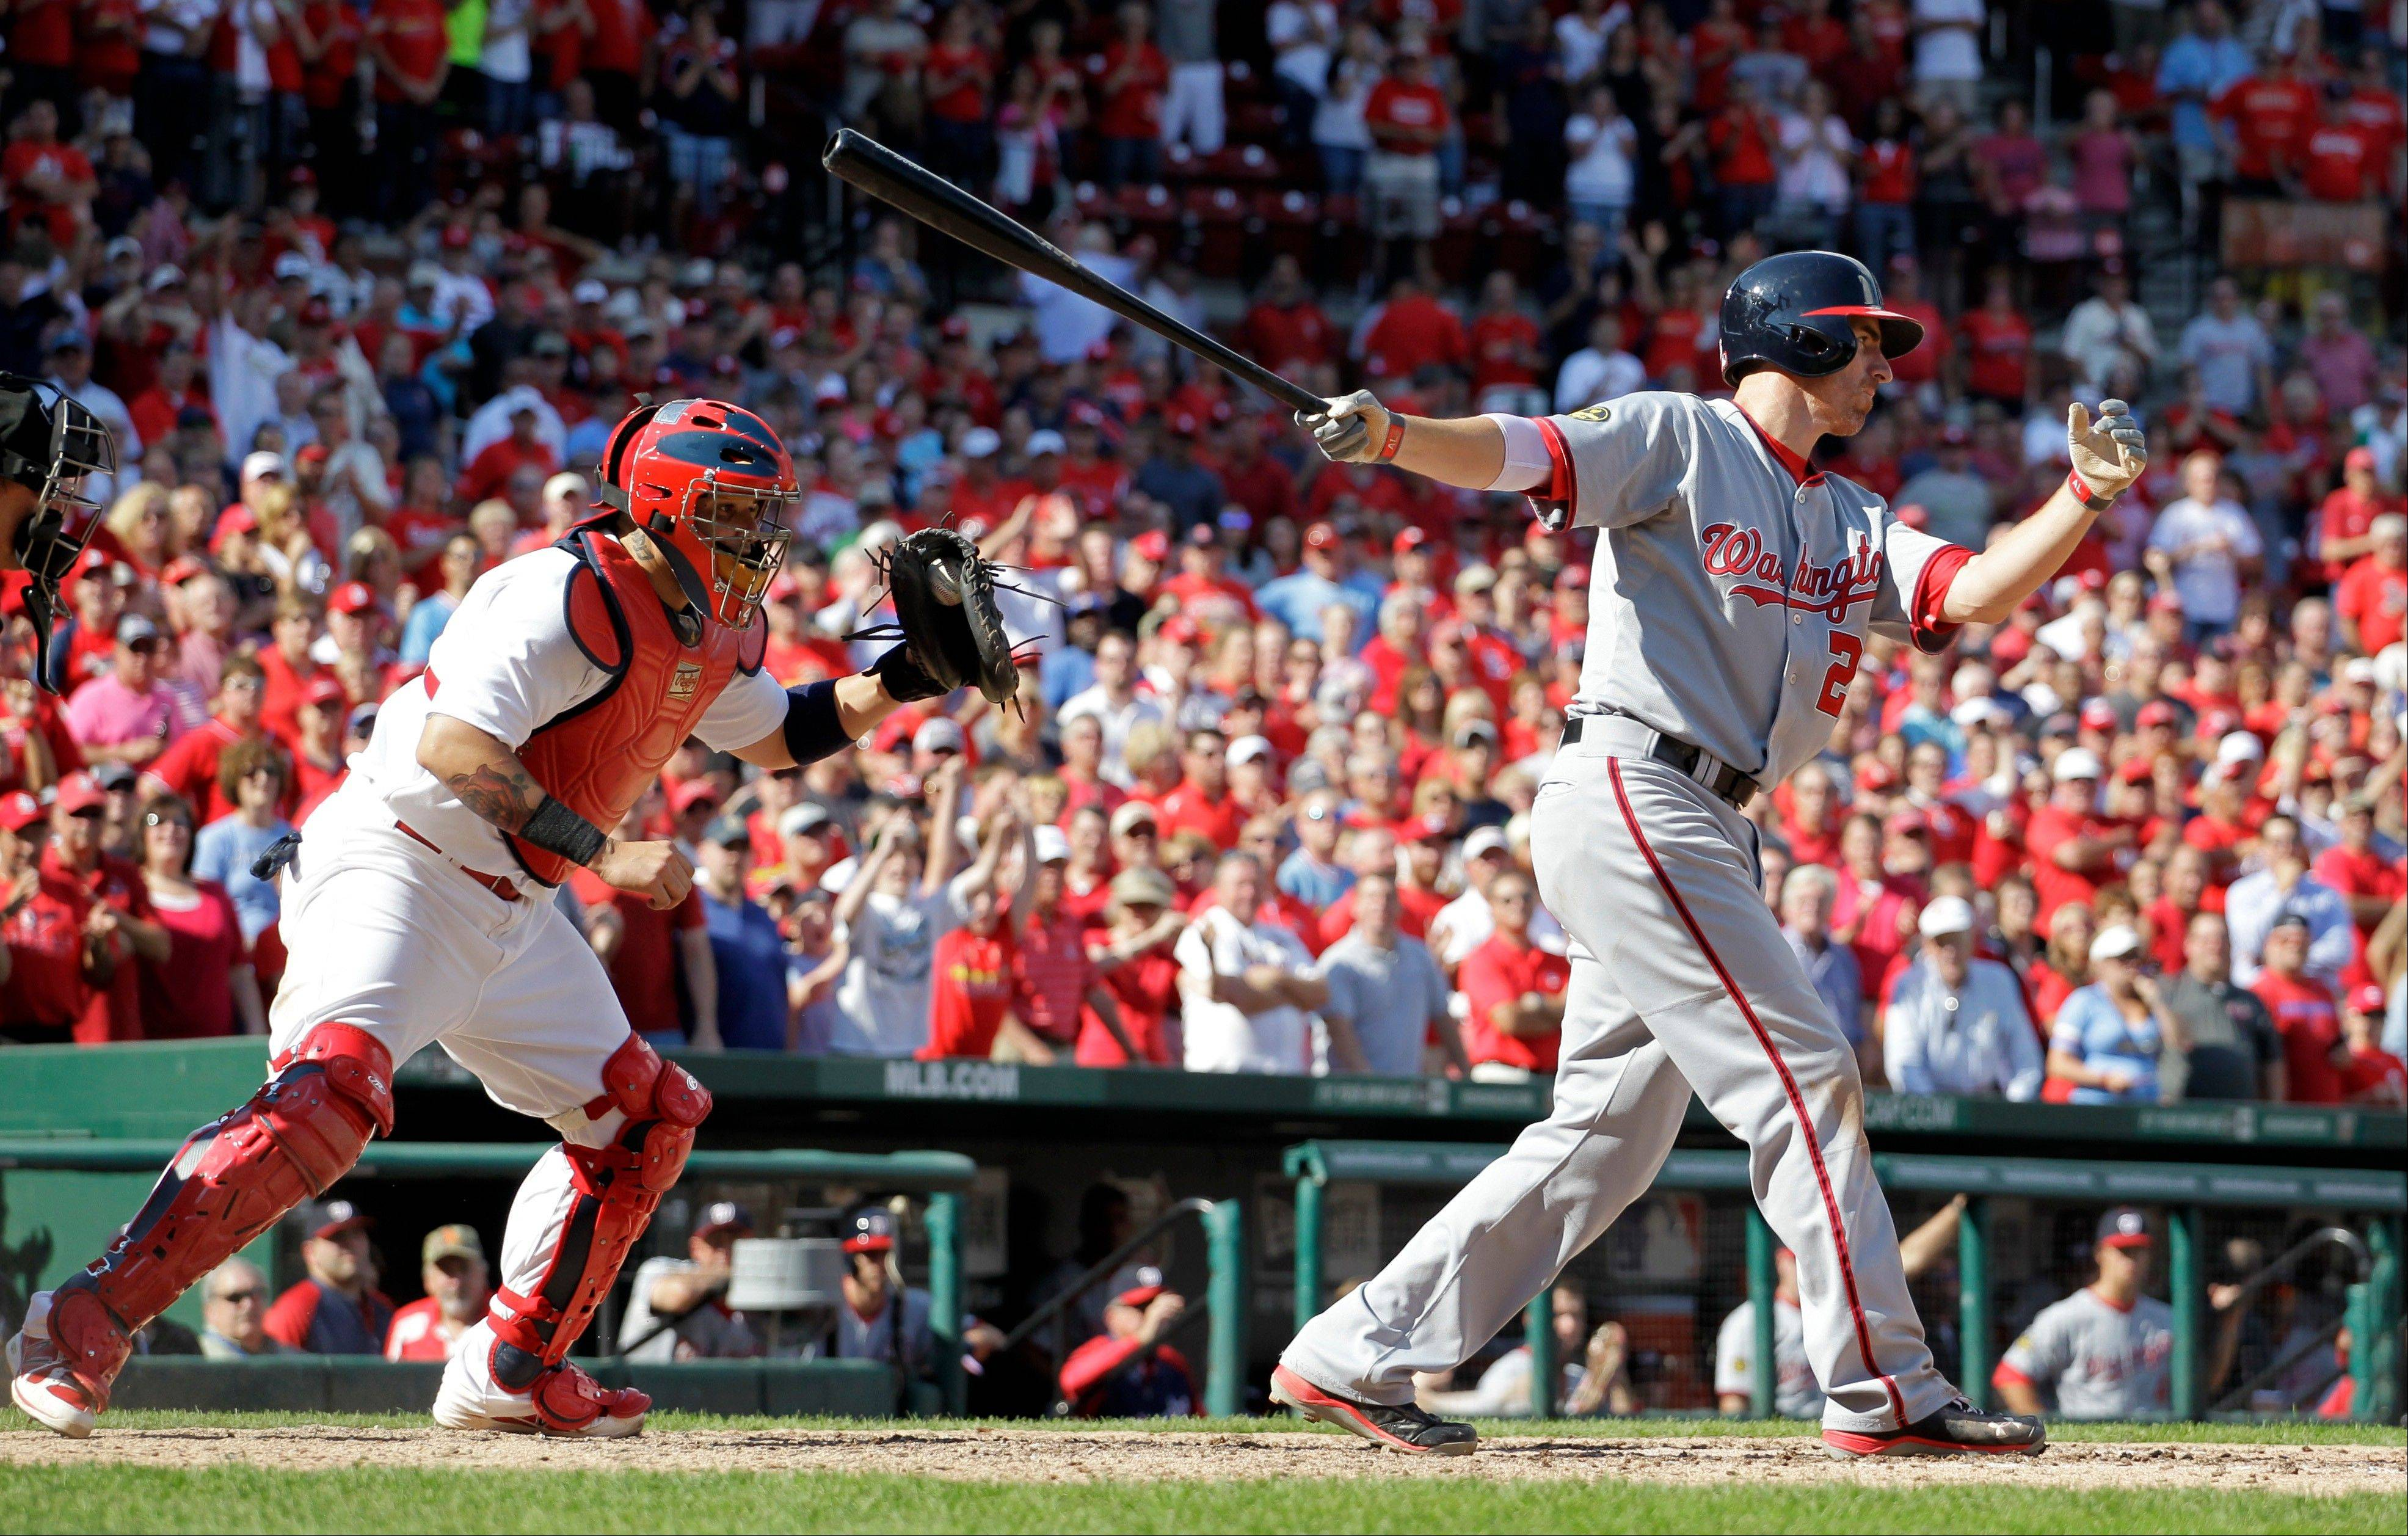 St. Louis Cardinals catcher Yadier Molina, left, celebrates as Washington Nationals� Adam LaRoche strikes out swinging for the final out of a baseball game Wednesday in St. Louis. The Cardinals won 4-1.